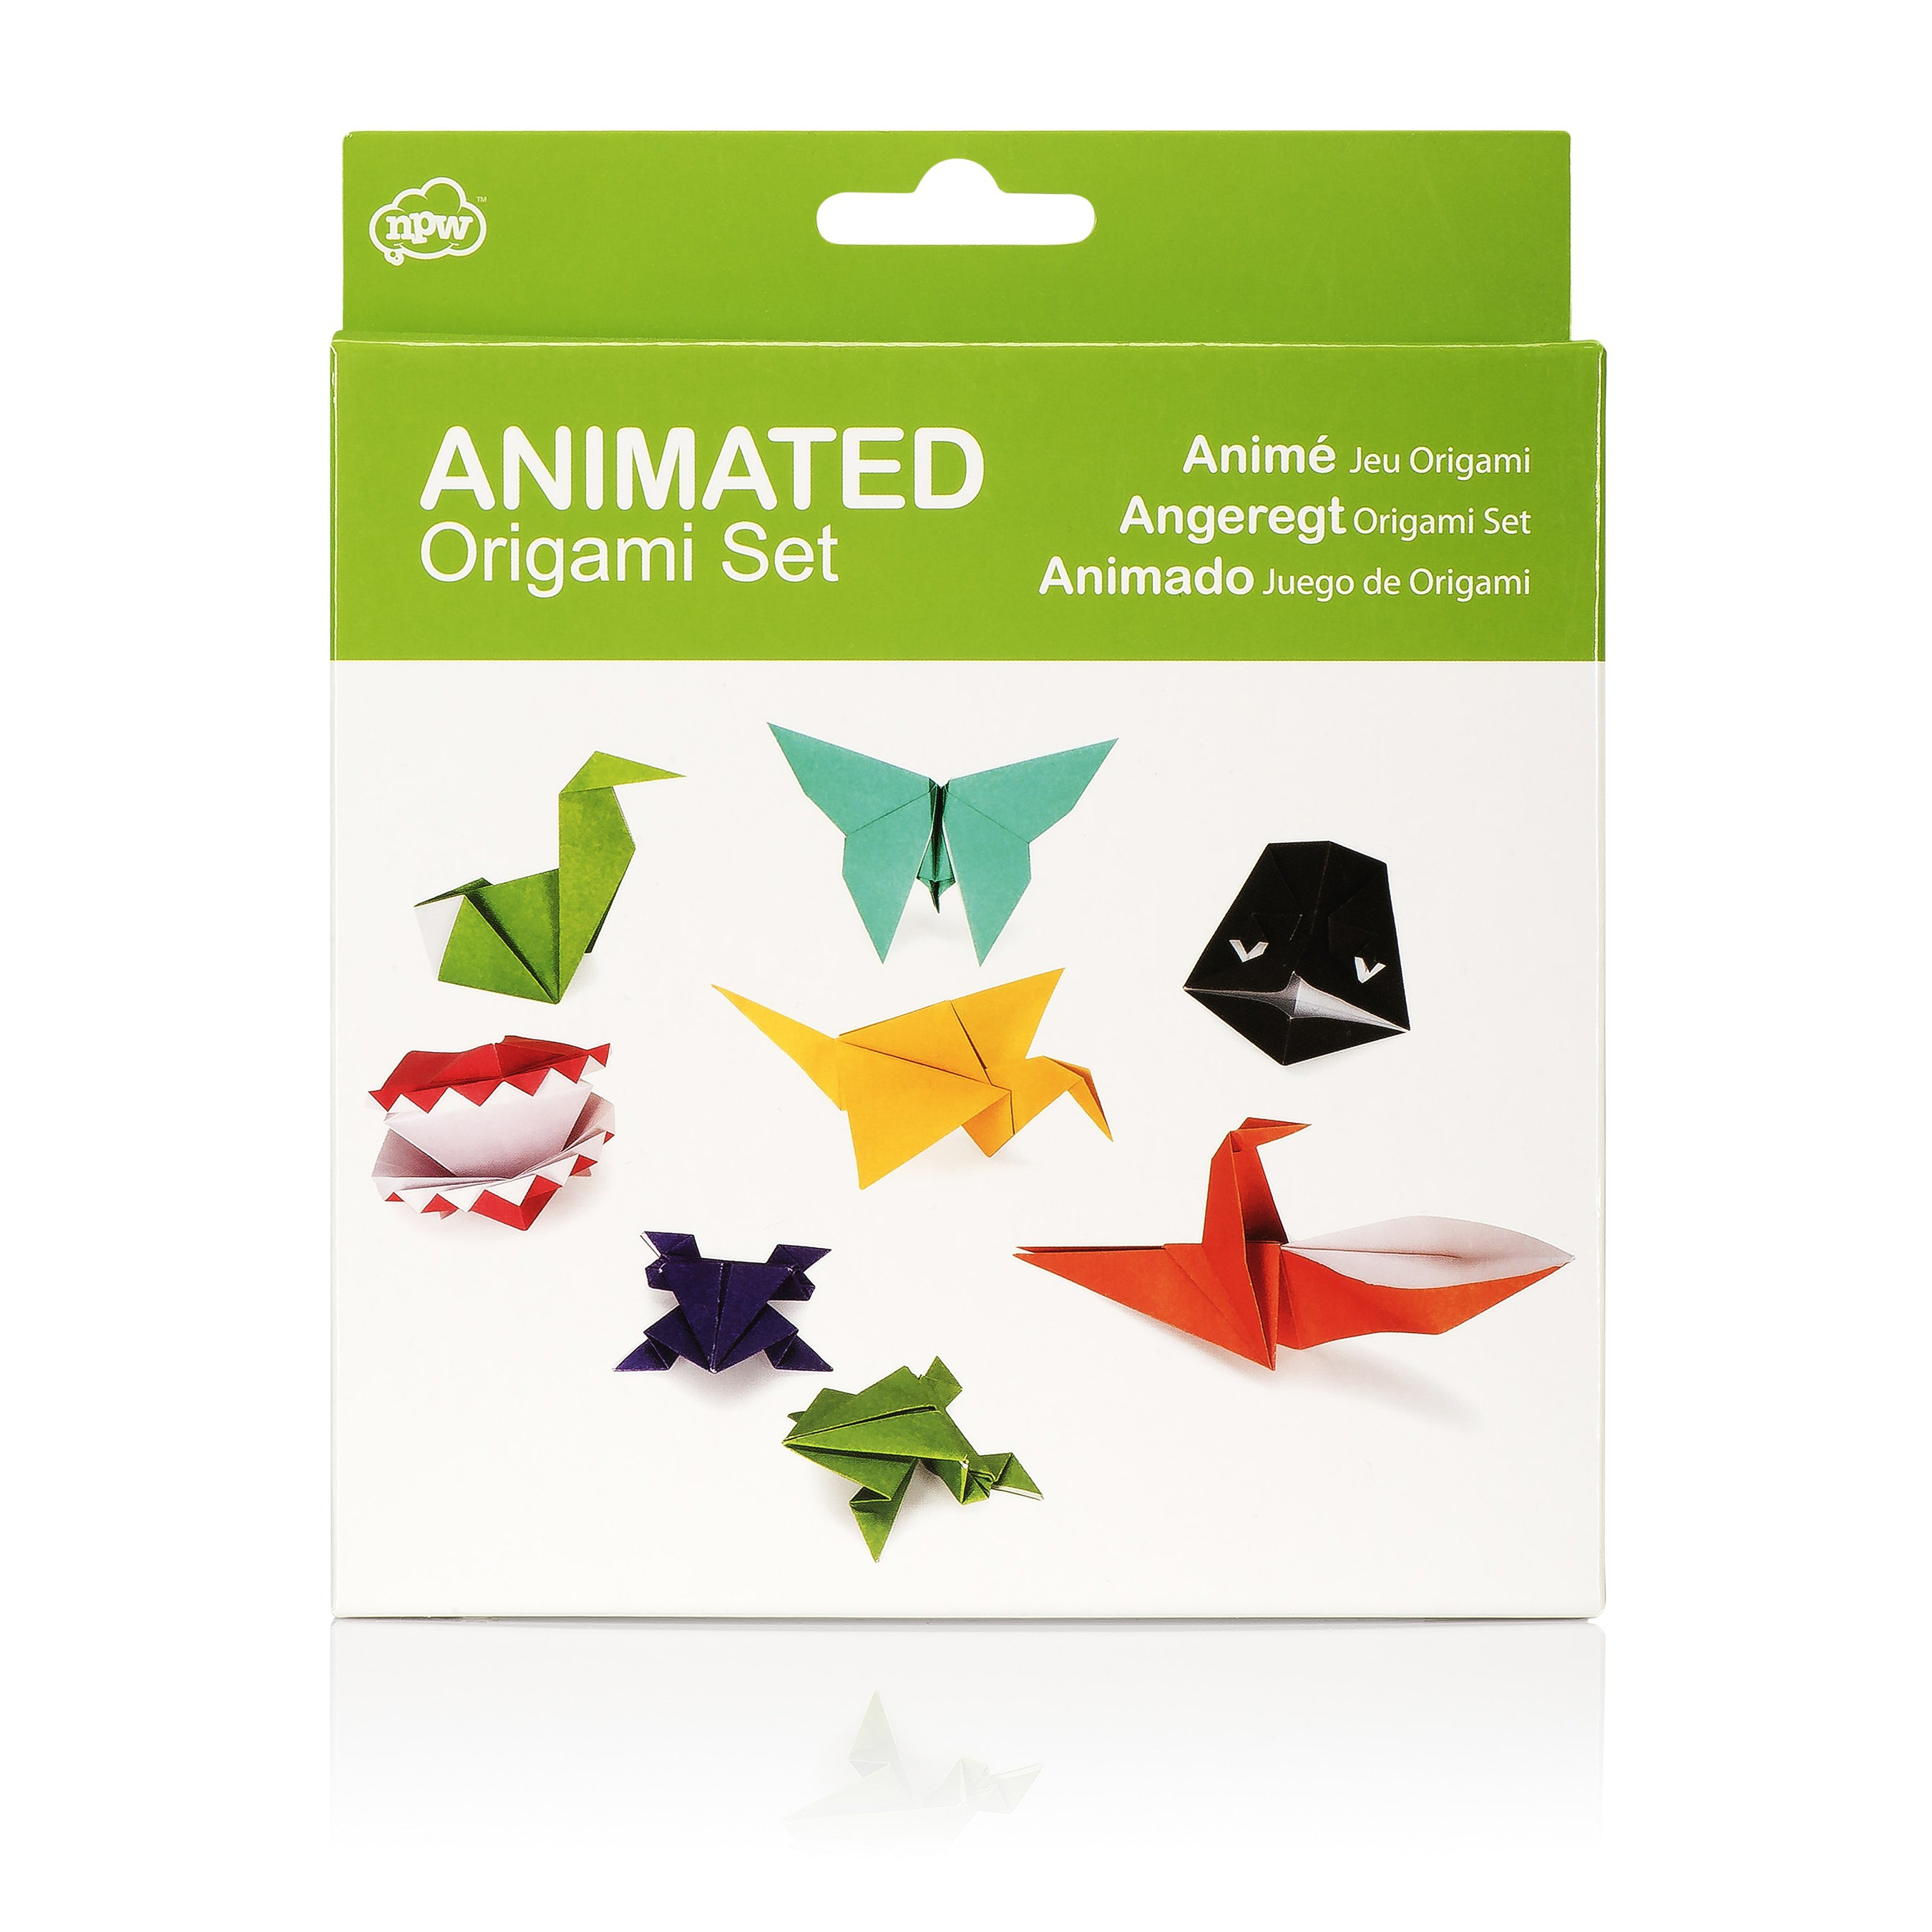 Animated Origami Set Baltic Shop